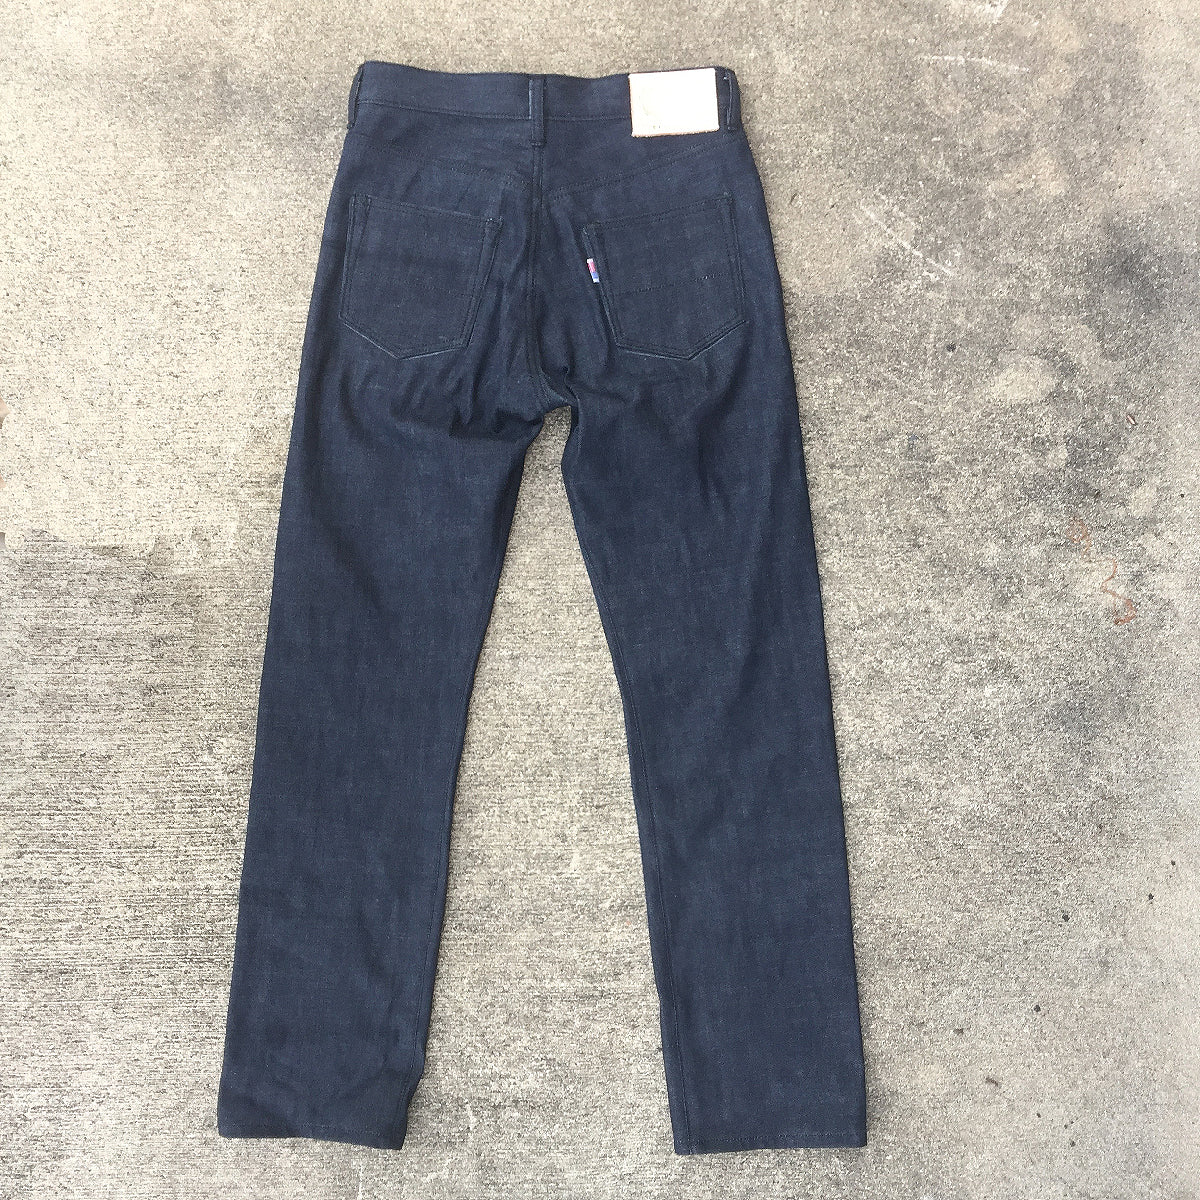 14oz TEXAS Denim Lot#13 Red Selvage-AVAILABLE AUG 30